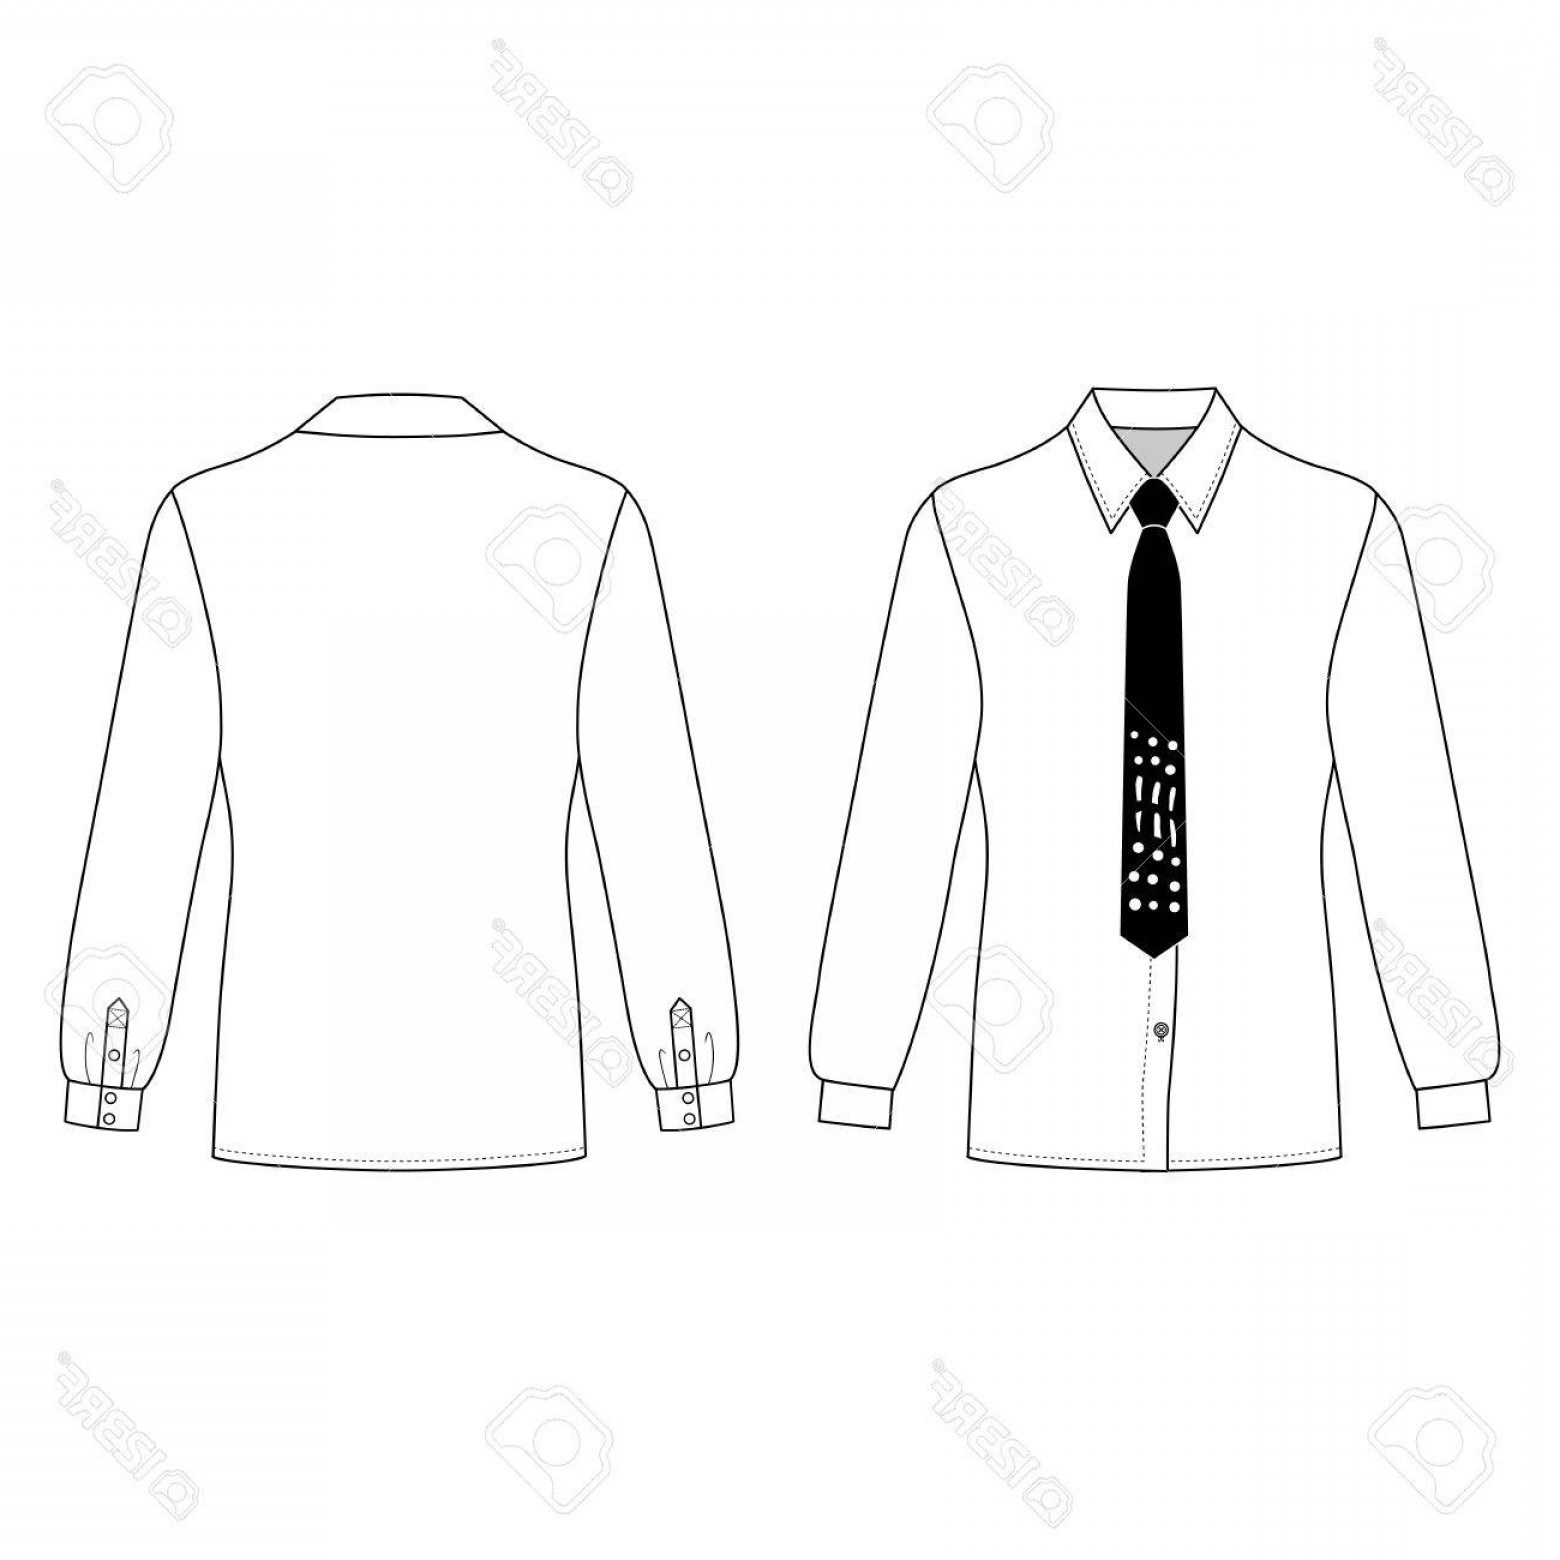 Sweatshirt Vector Template: Photostock Vector Long Sleeve Man S Shirt Tie Outlined Template Front Back View Vector Illustration Isolated On White